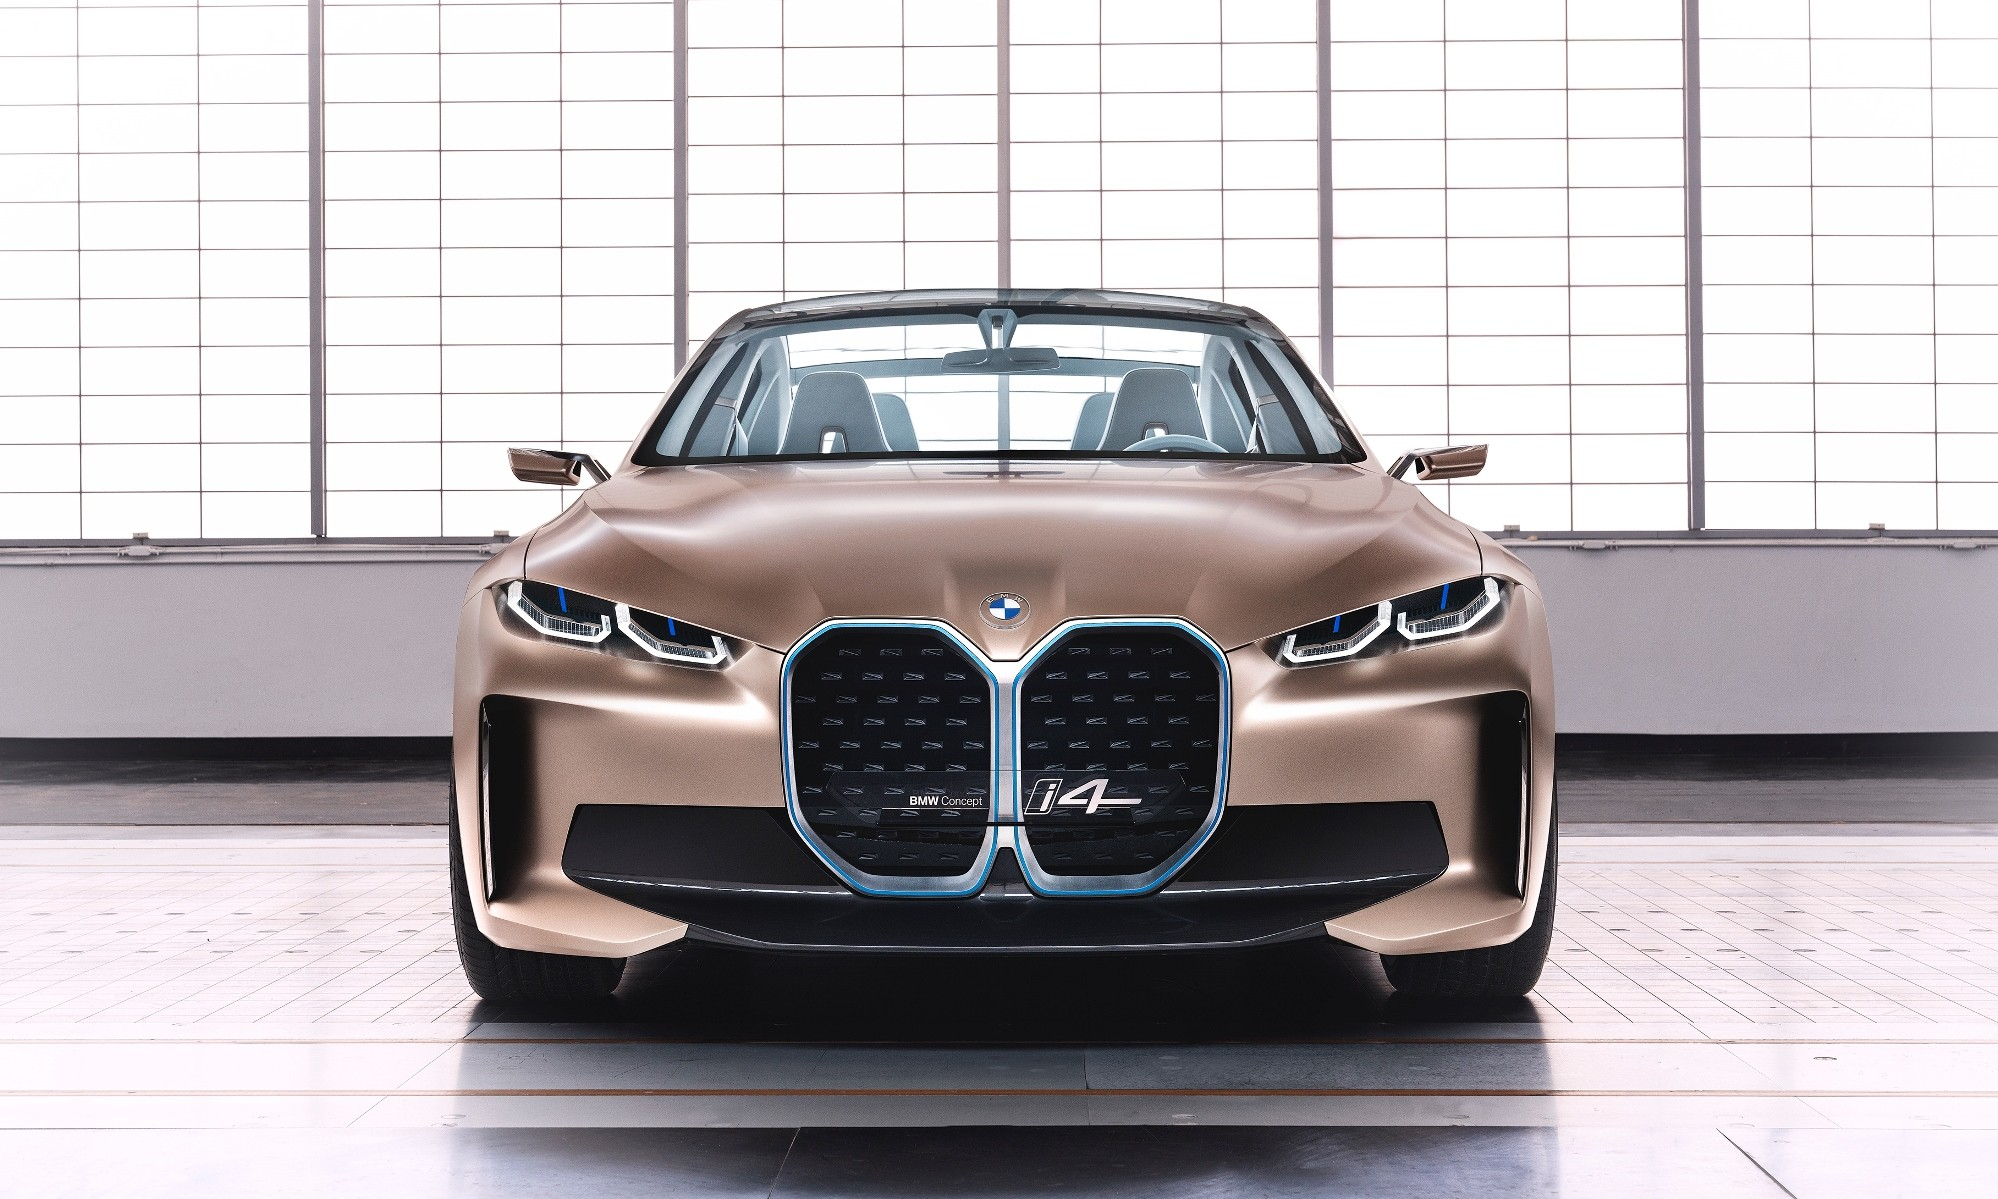 BMW i4 Concept front